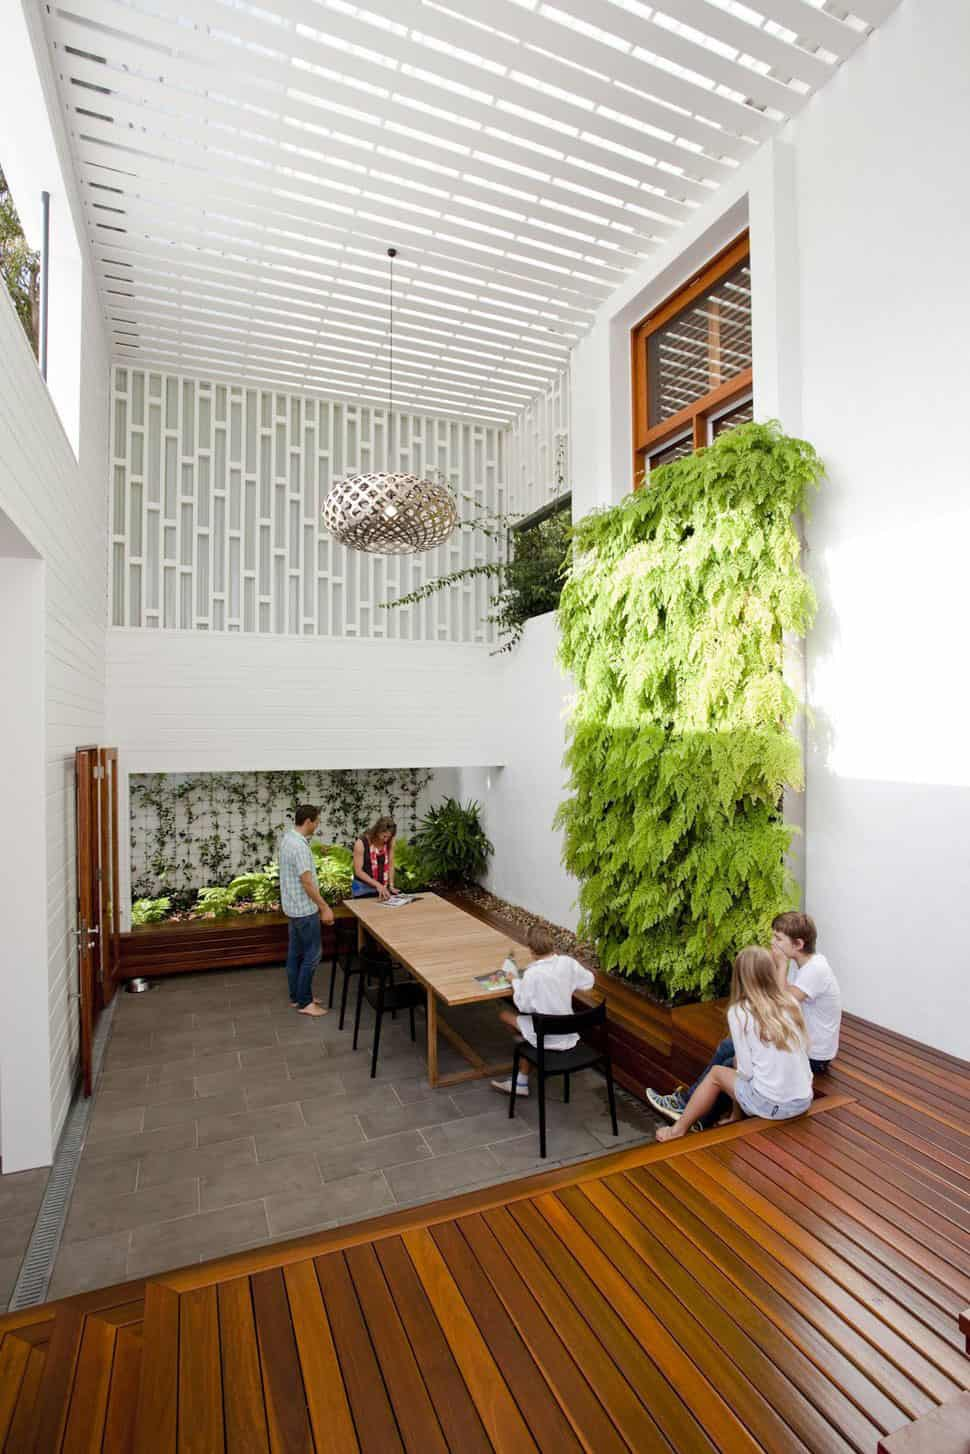 Stunningly Reinvented Australian Home Features Towering